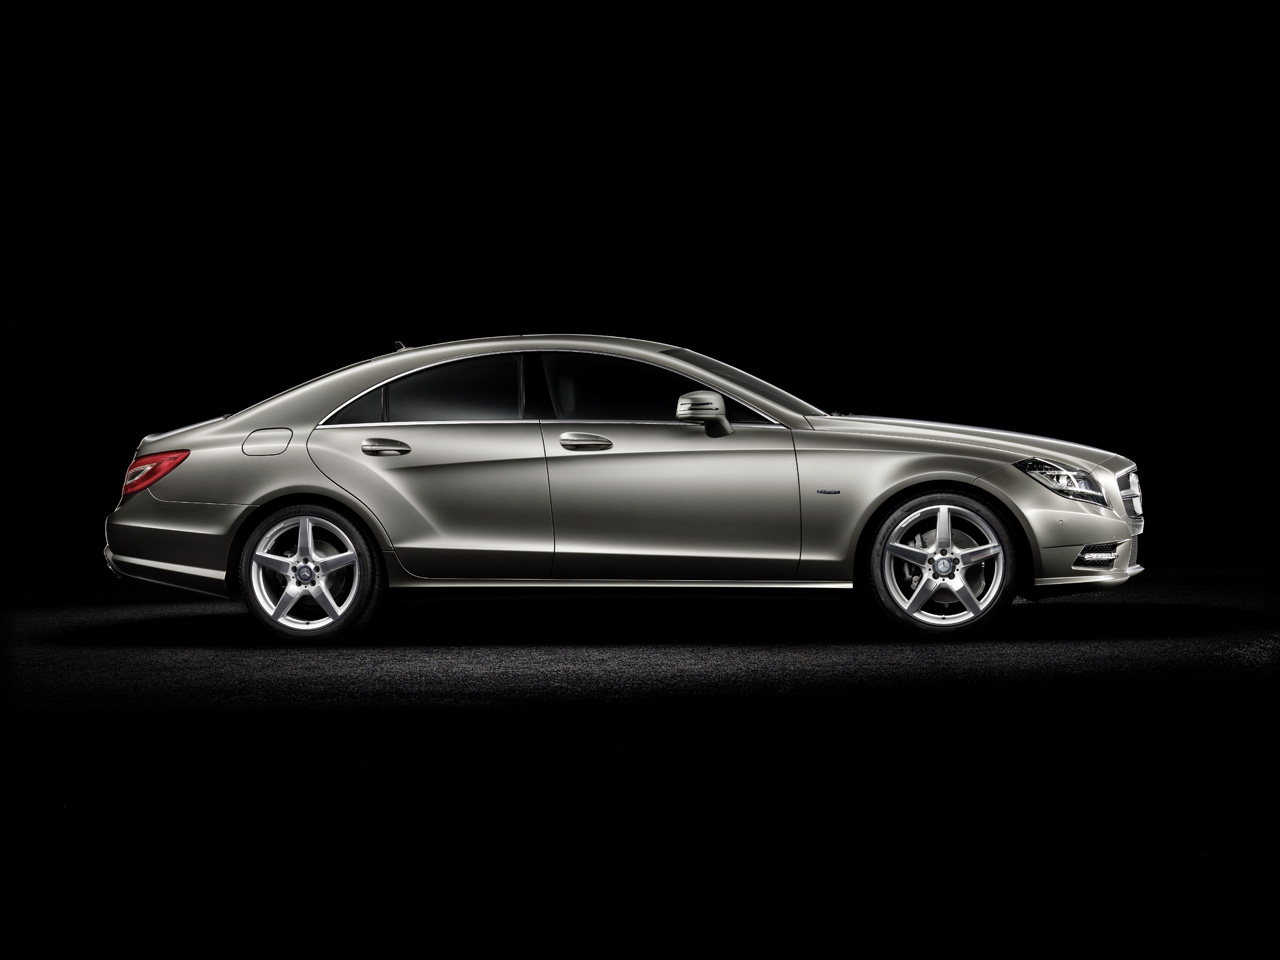 Benz CLS Review And And Specs Gambar Modifikasi Motor Antik